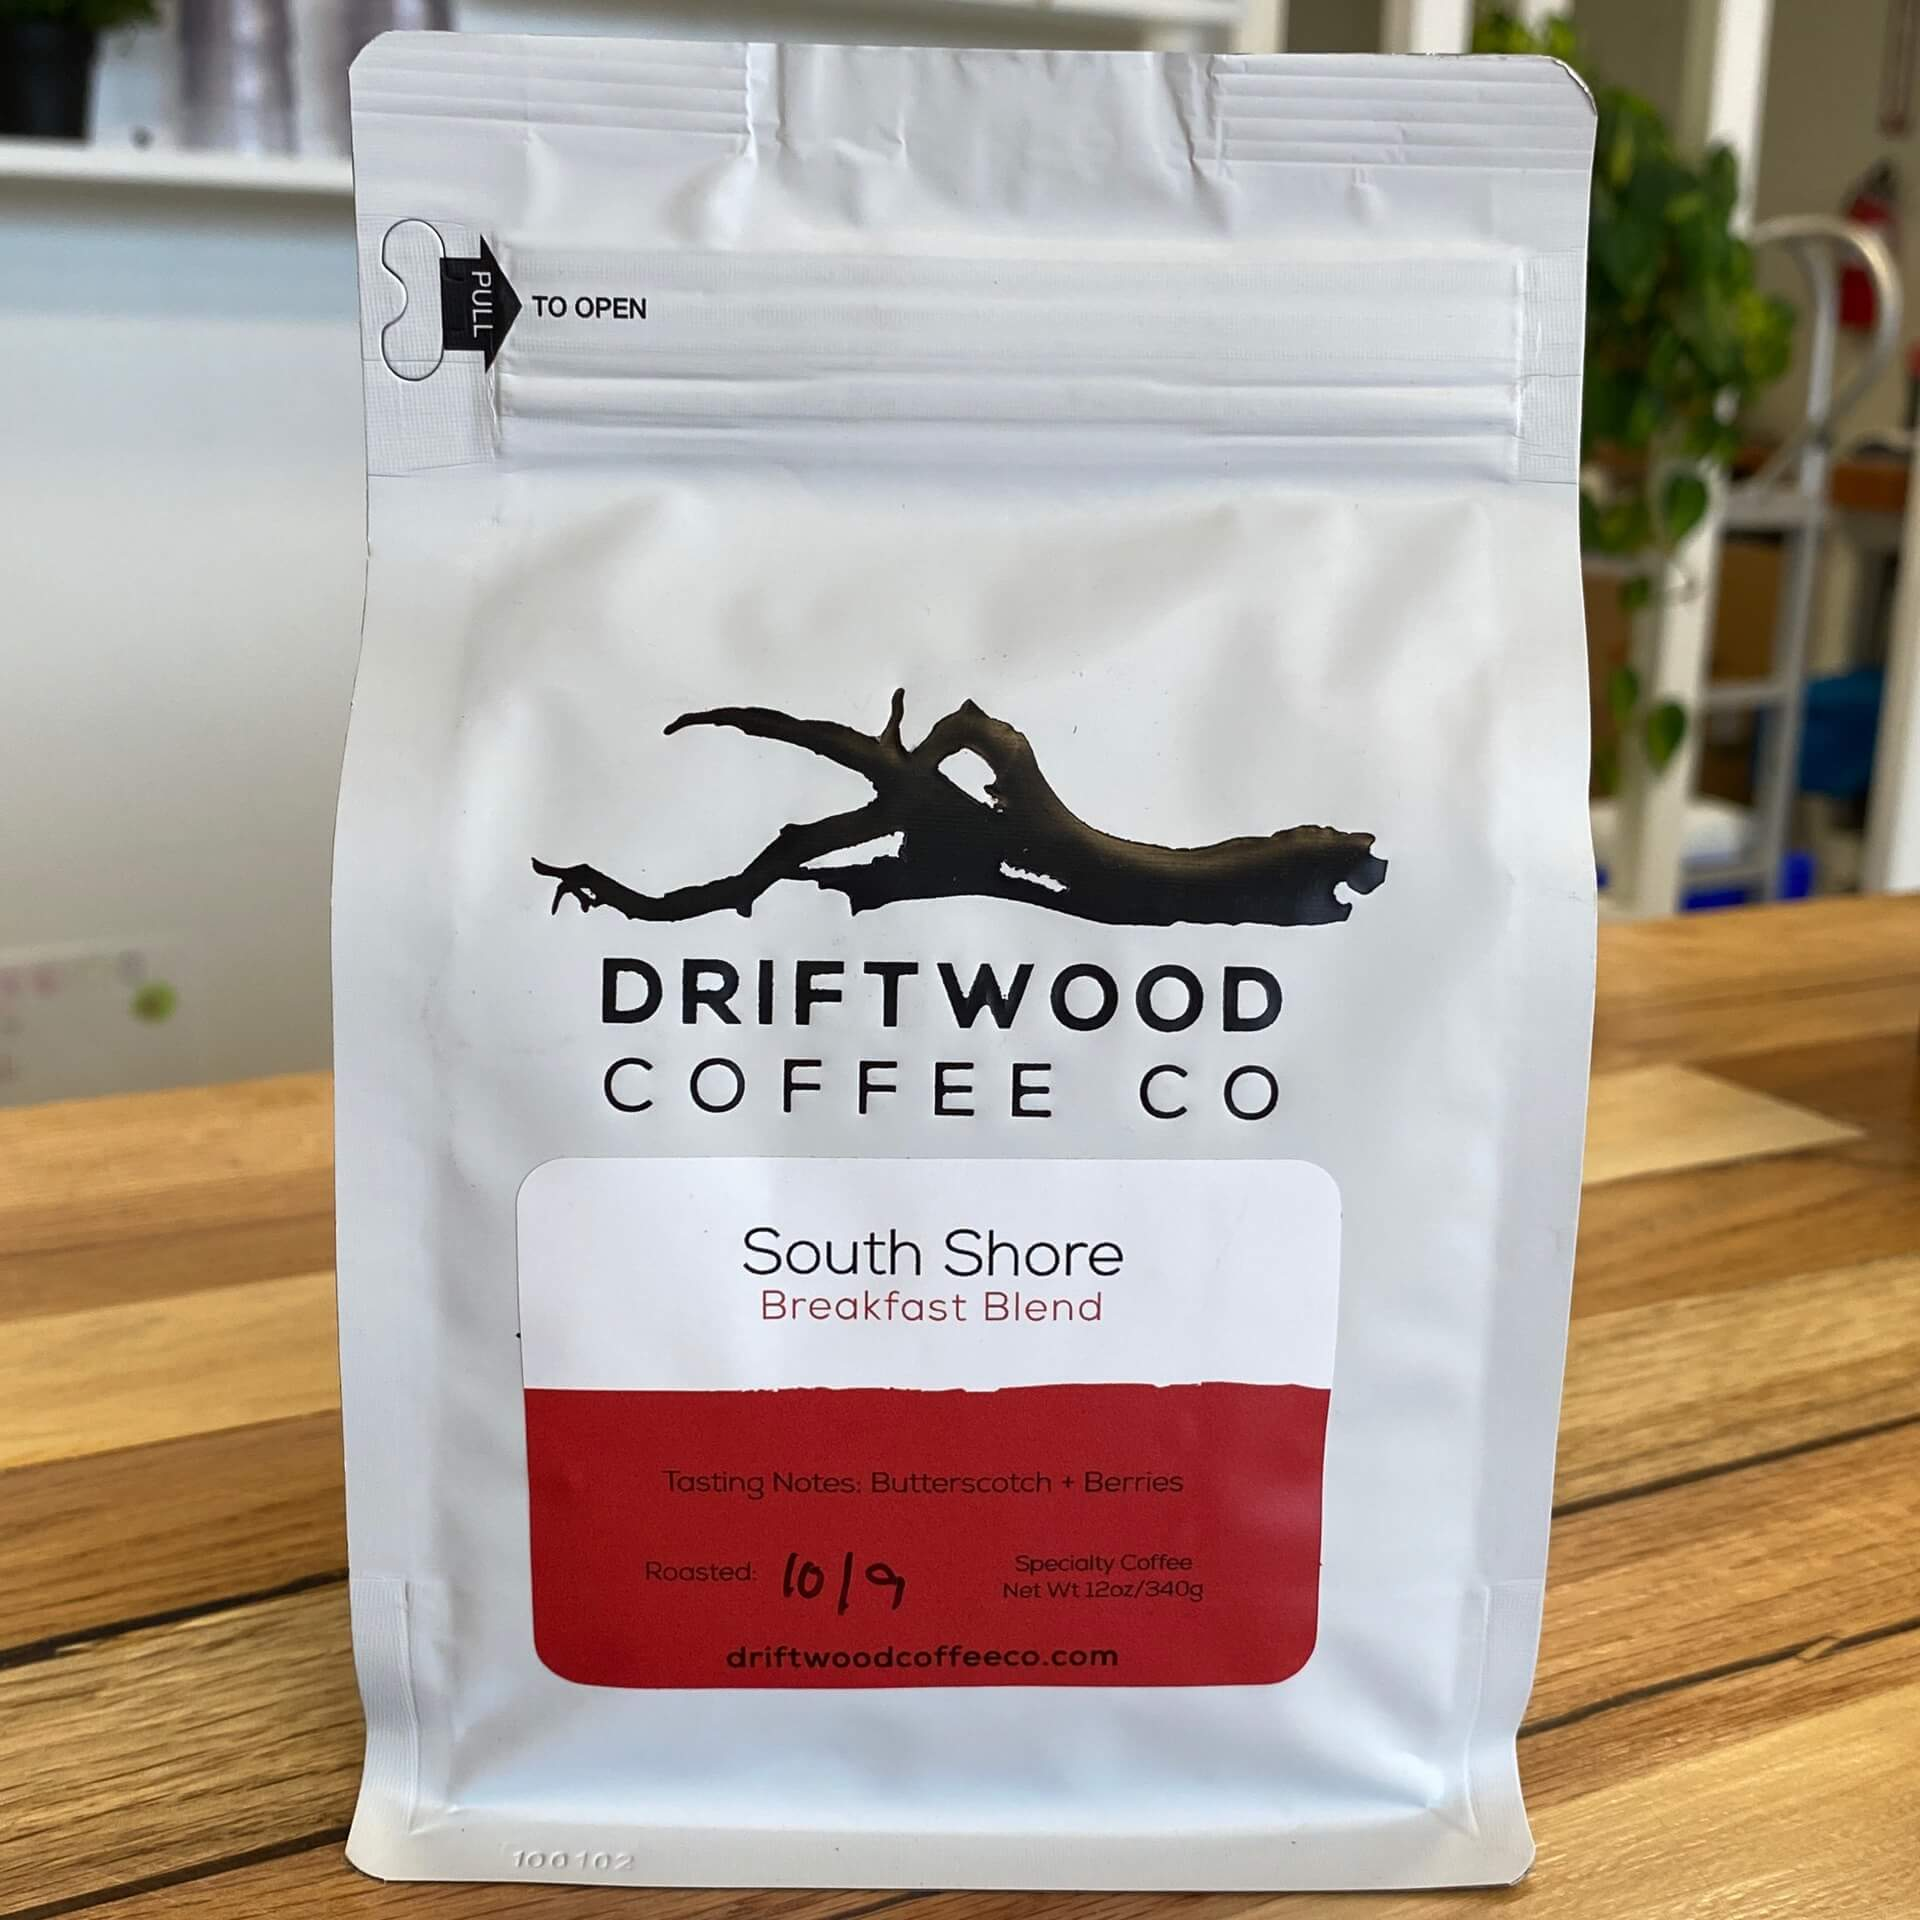 South Shore Breakfast Blend from Driftwood Coffee Co